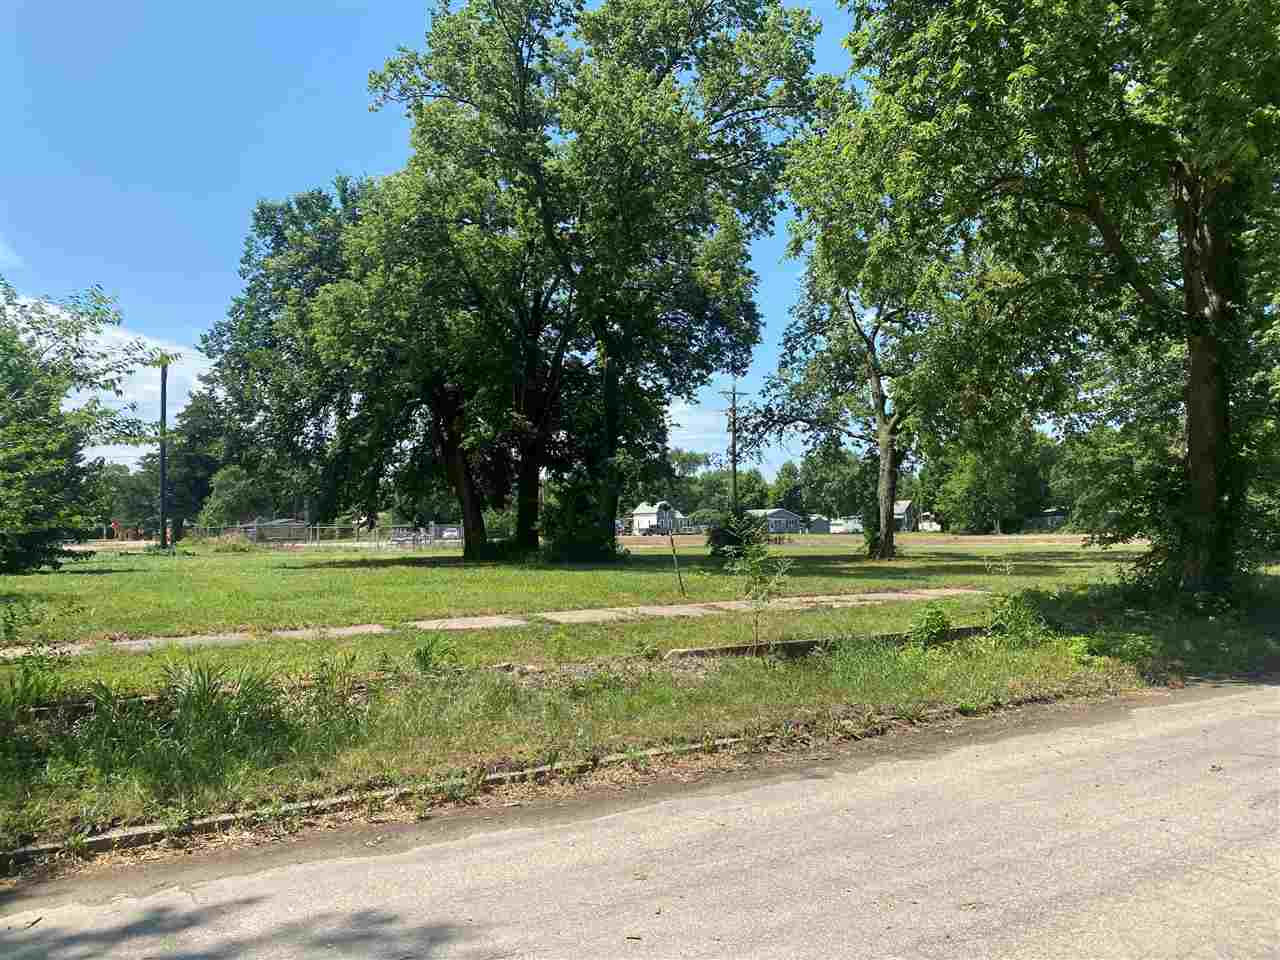 Lot Dimensions 140X92 Currently zoned for residential, but is near commercially zoned area and is a block south of Highway 24.